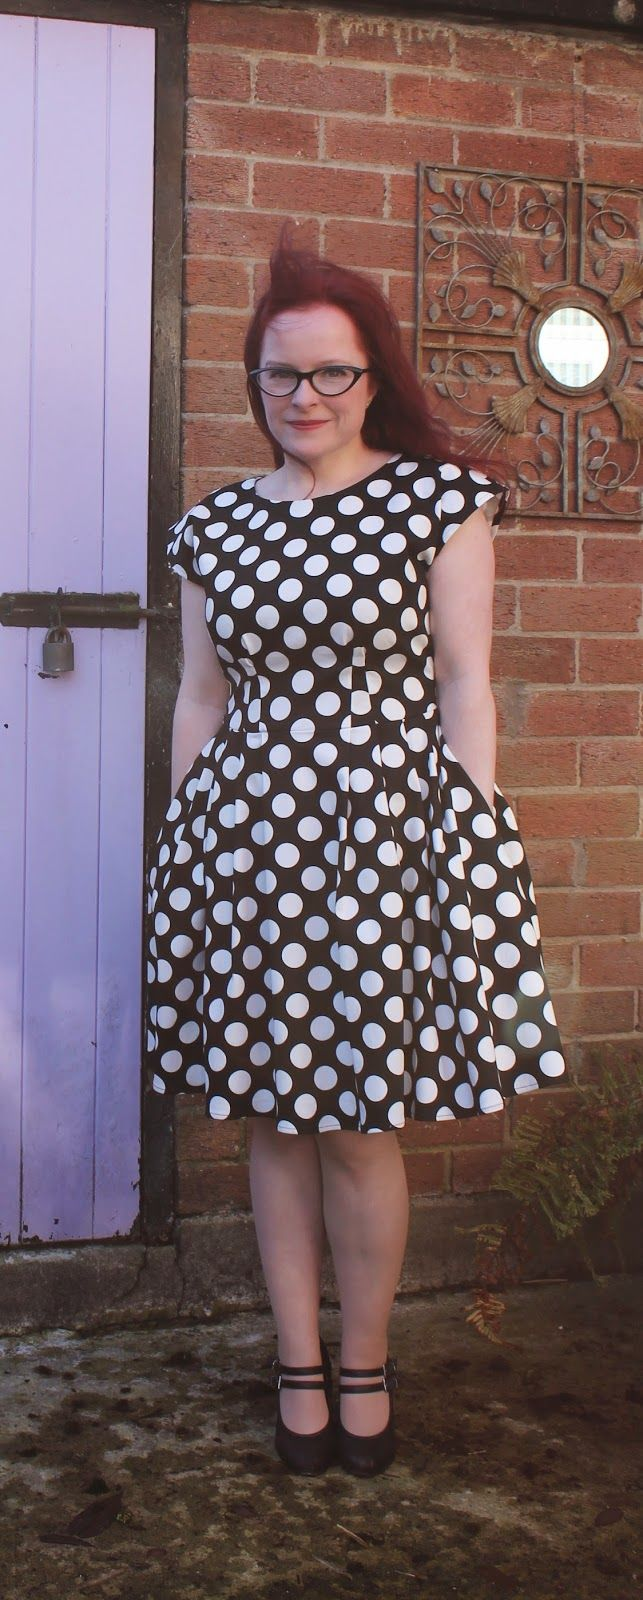 The Anna Lou Dress - Anna and Lilou Frankenpattern